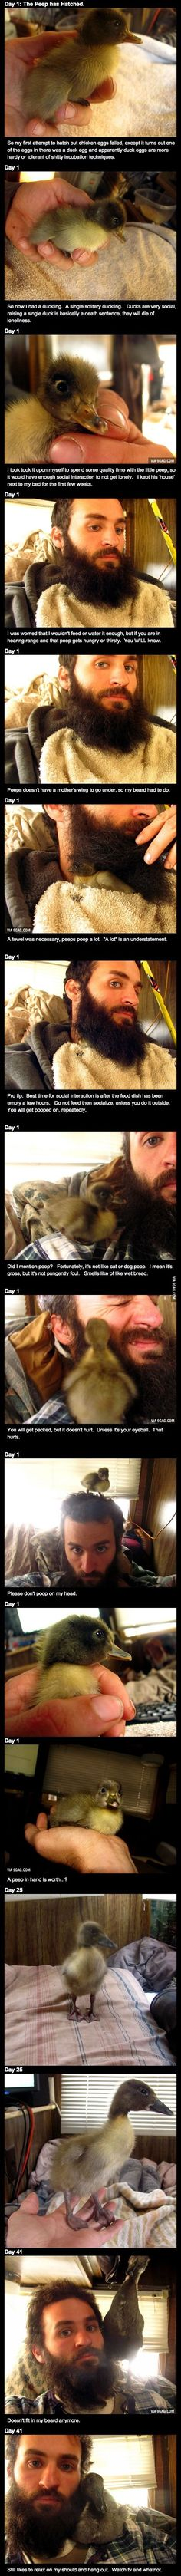 How This Man鈥檚 Epic Beard Saved A Duckling鈥檚 Life. |   See More about ducklings, beards and this man.